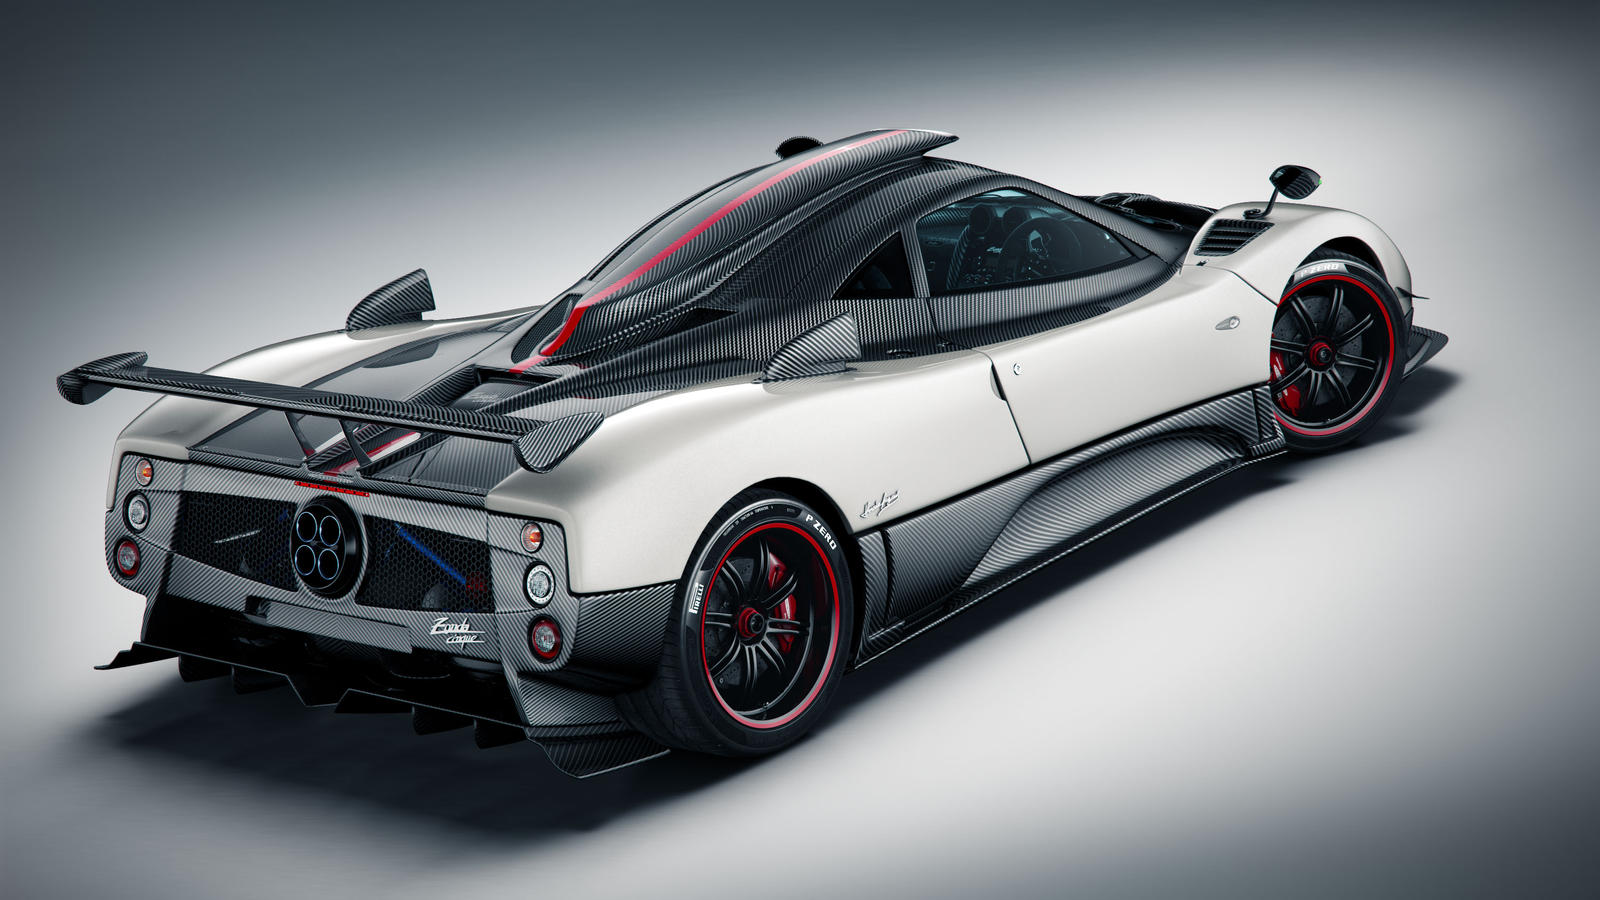 Pagani Zonda revisited 02 by NasG85